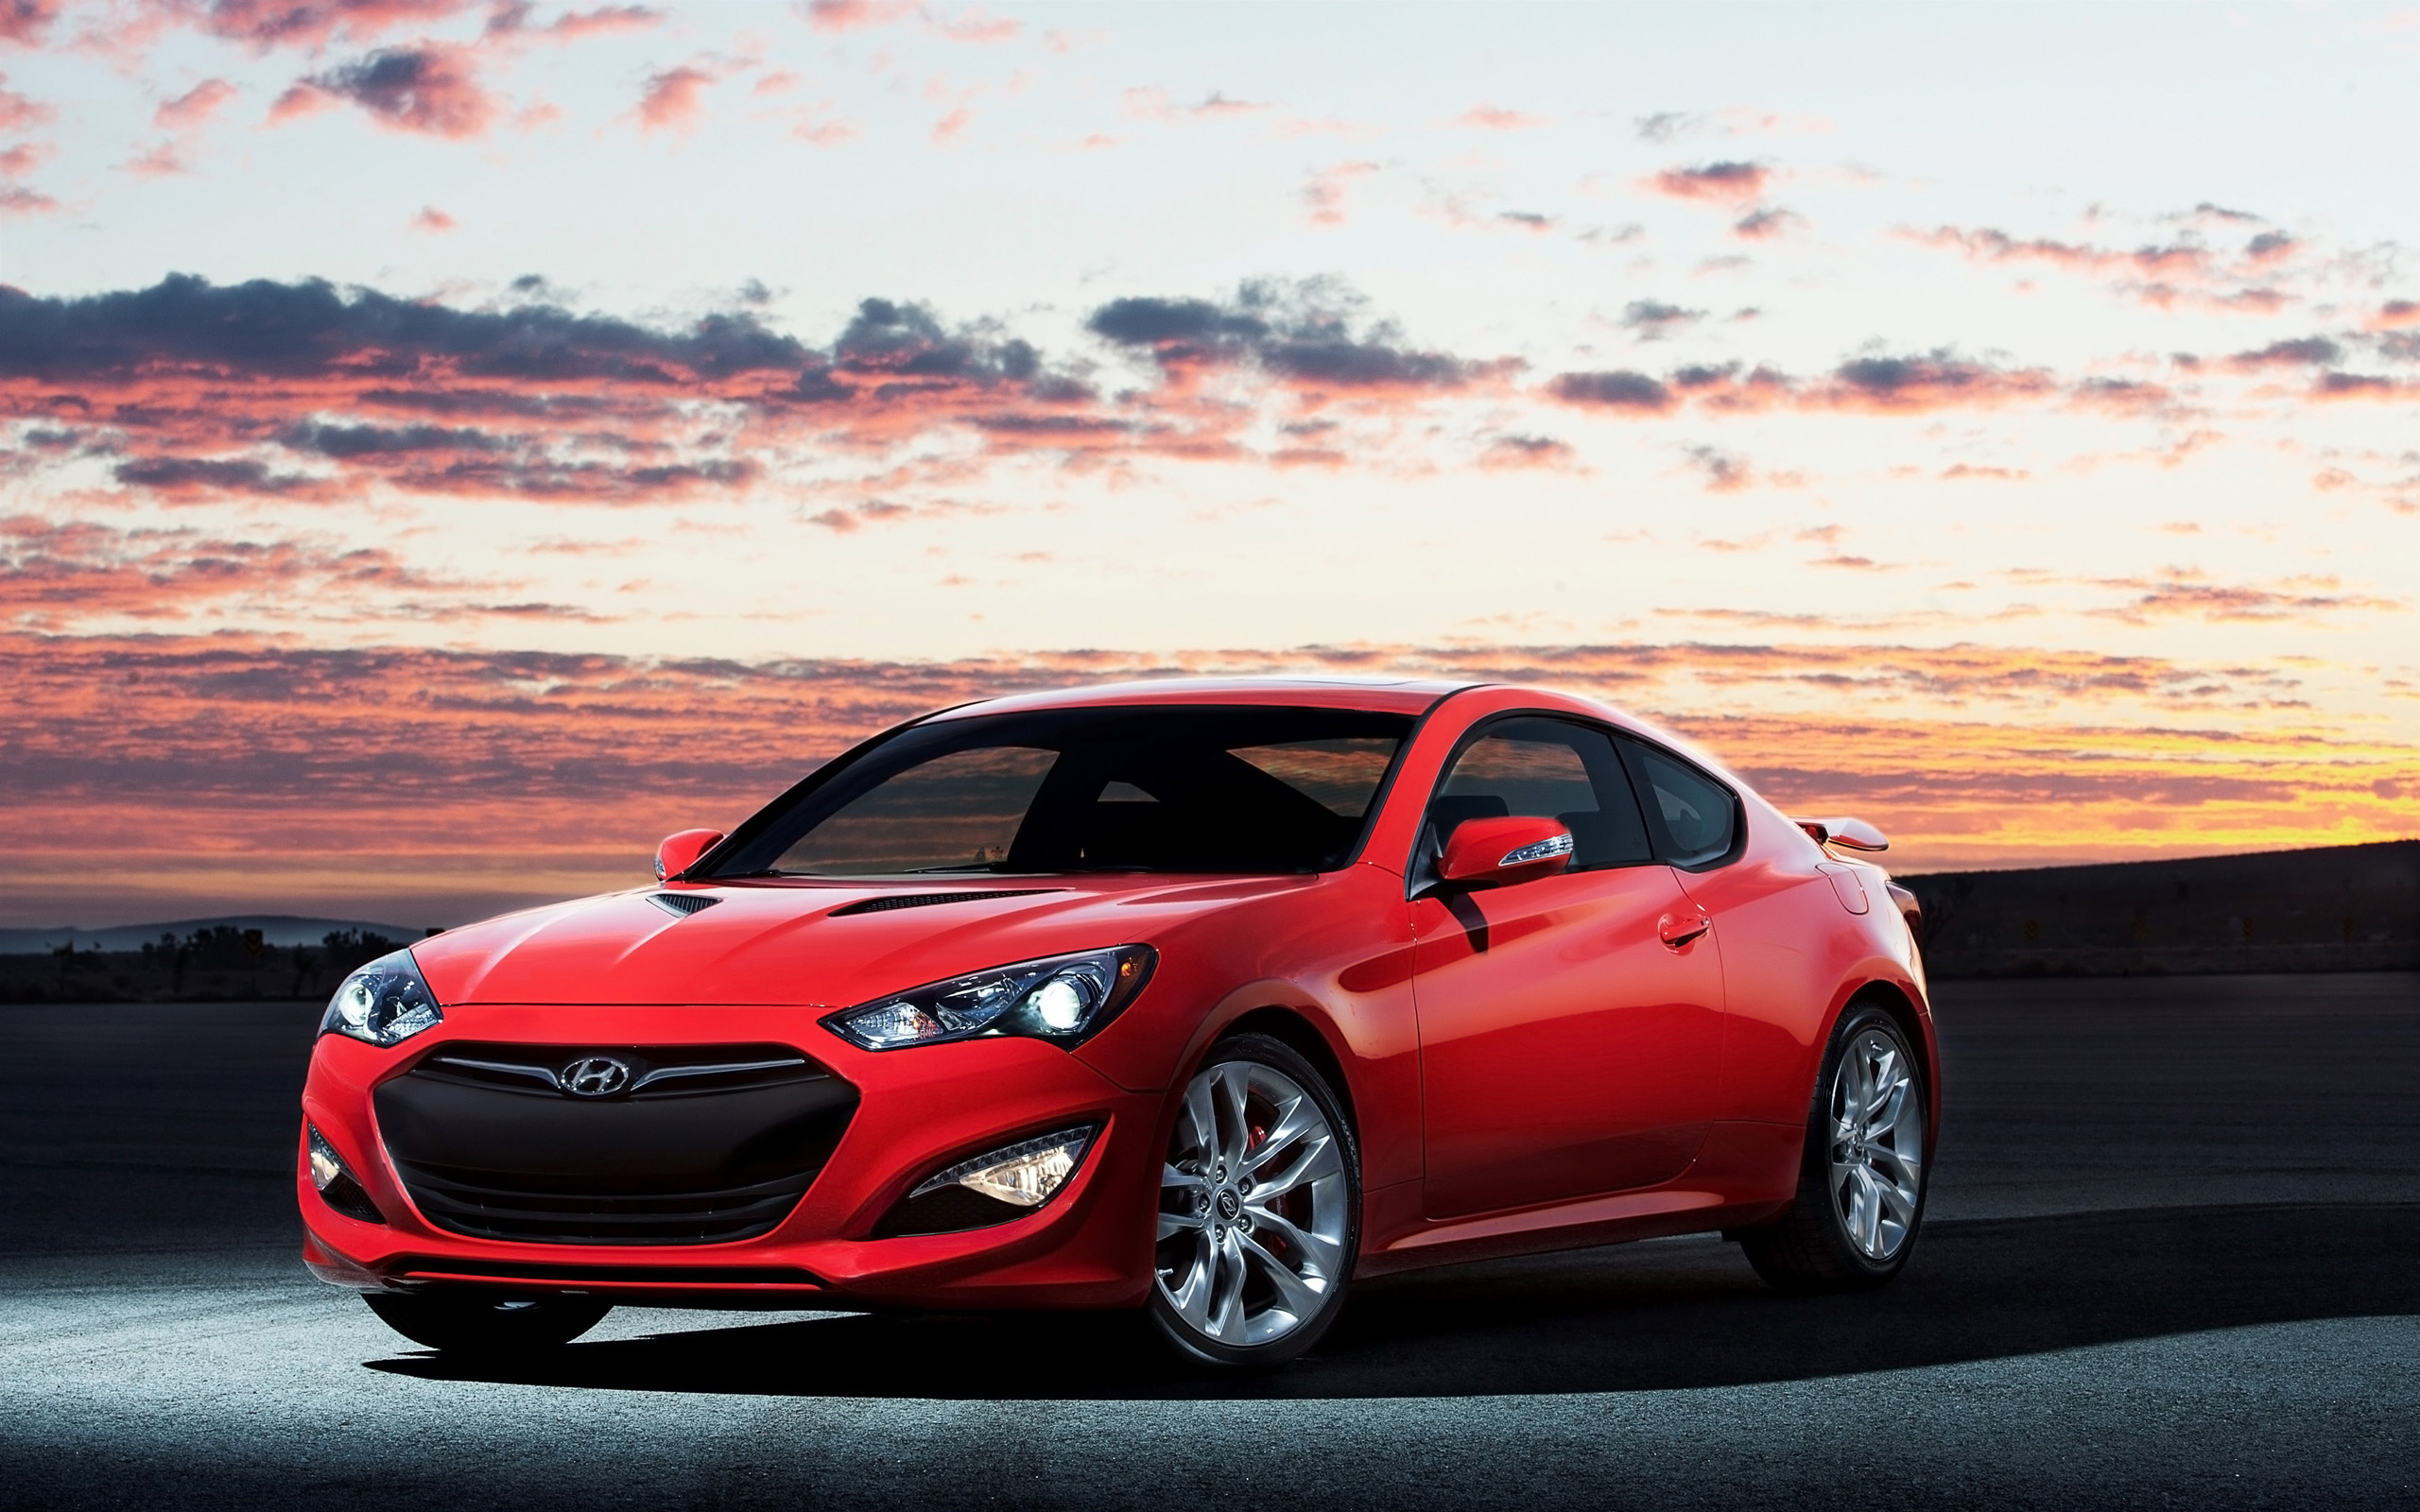 2015 hyundai genesis coupe wallpaper hd car wallpapers. Black Bedroom Furniture Sets. Home Design Ideas